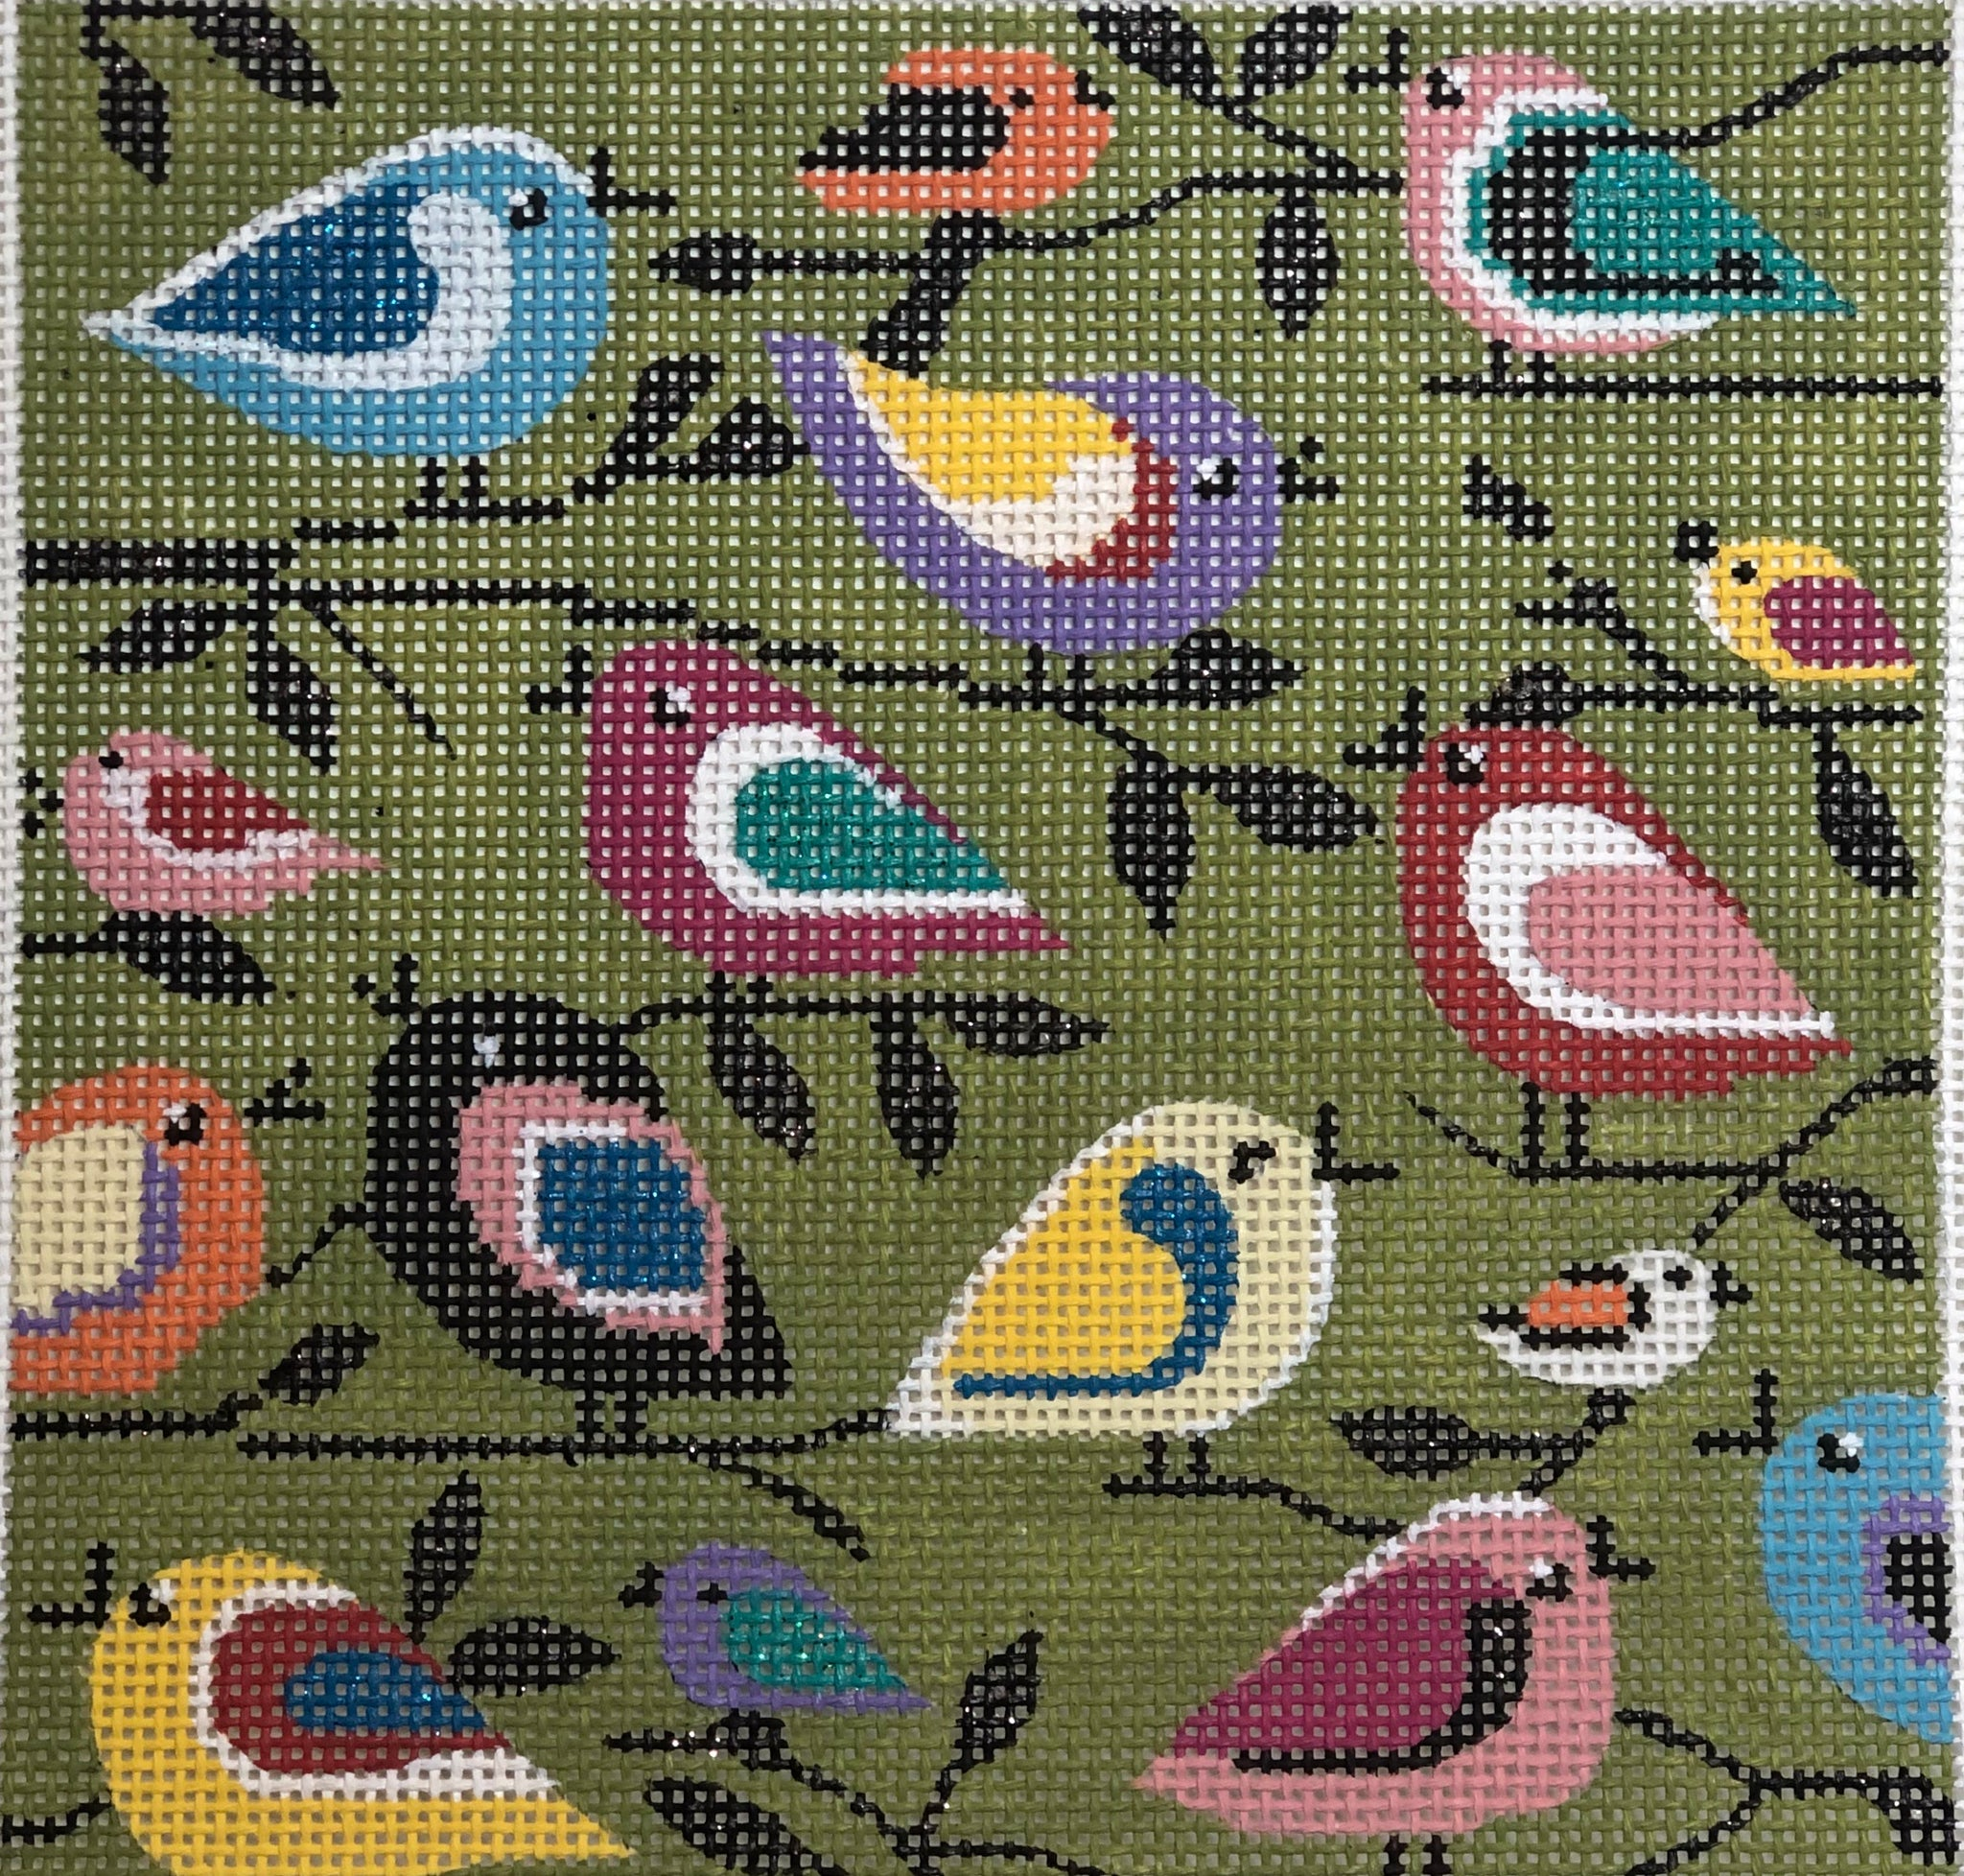 Ap 2293 Birds of a different color